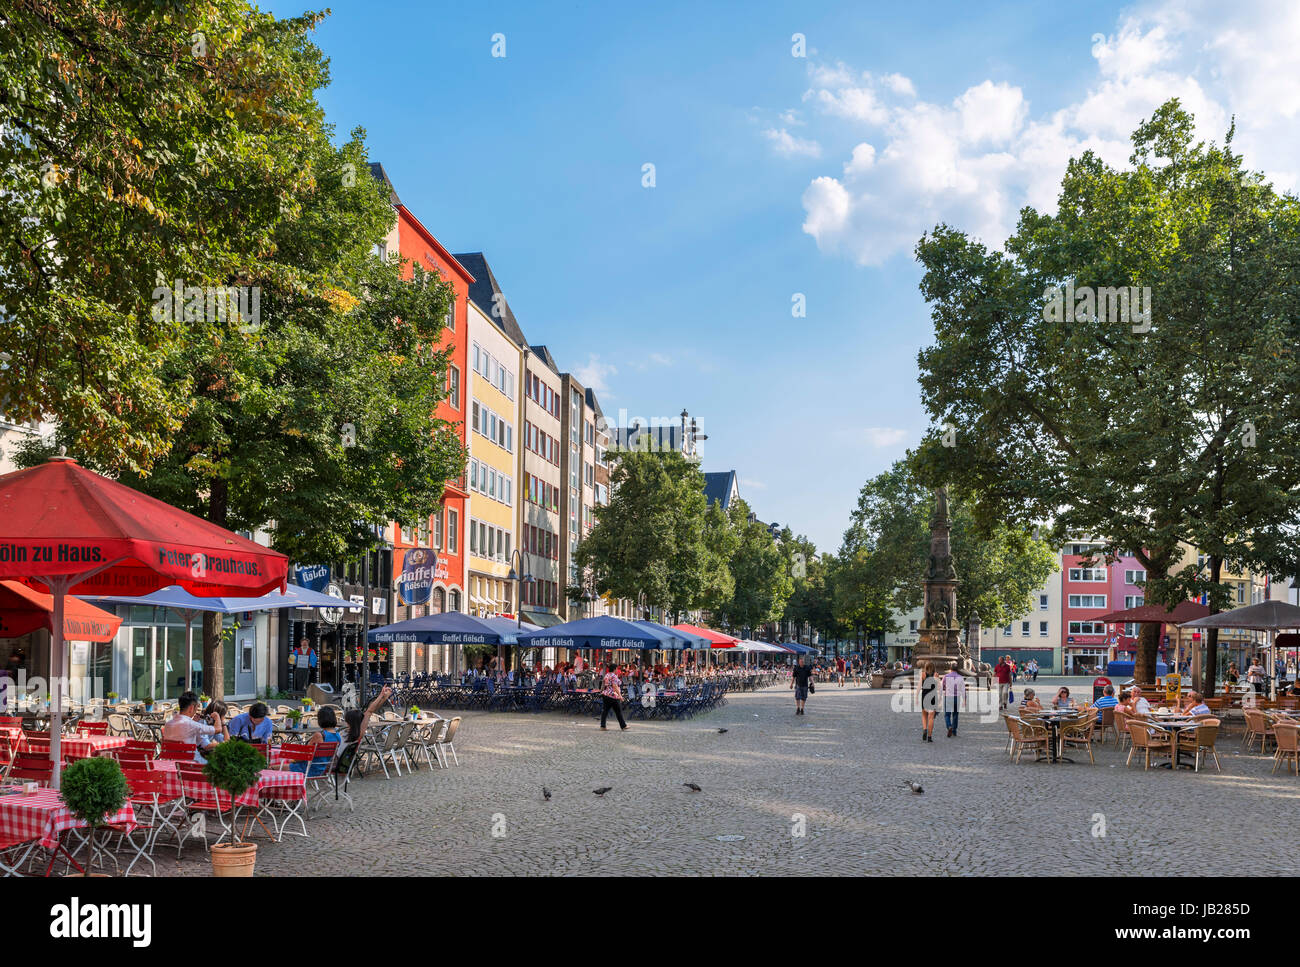 Cafes in the Alter Markt (Old Market Square), Altstadt, Cologne, Germany - Stock Image